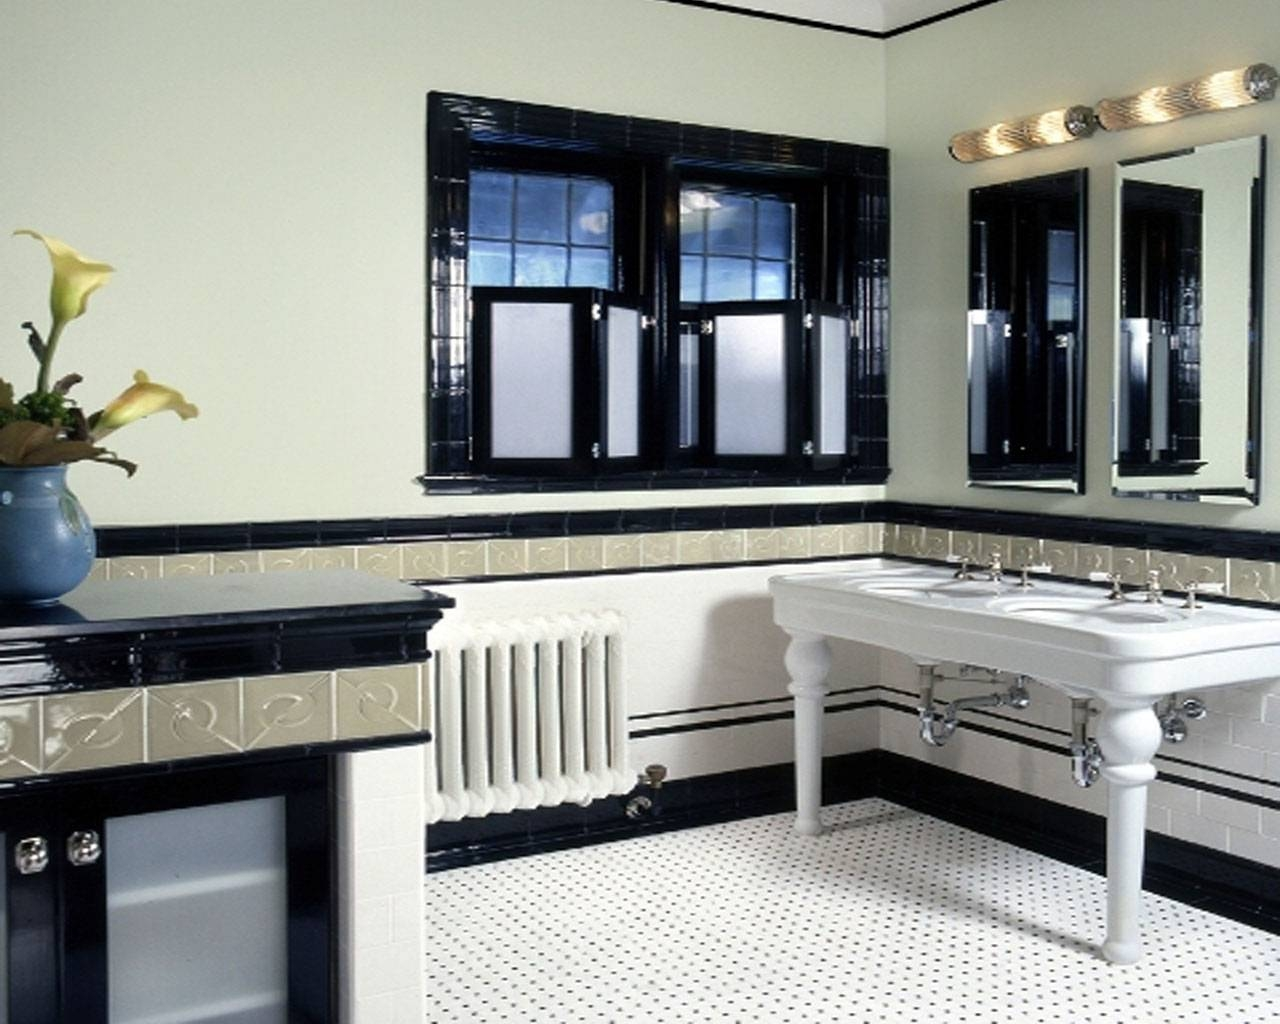 Bathroom: Modern Bathroom Art Deco Architecture Interior Small within Art Deco Style Bathroom Mirrors (Image 21 of 25)